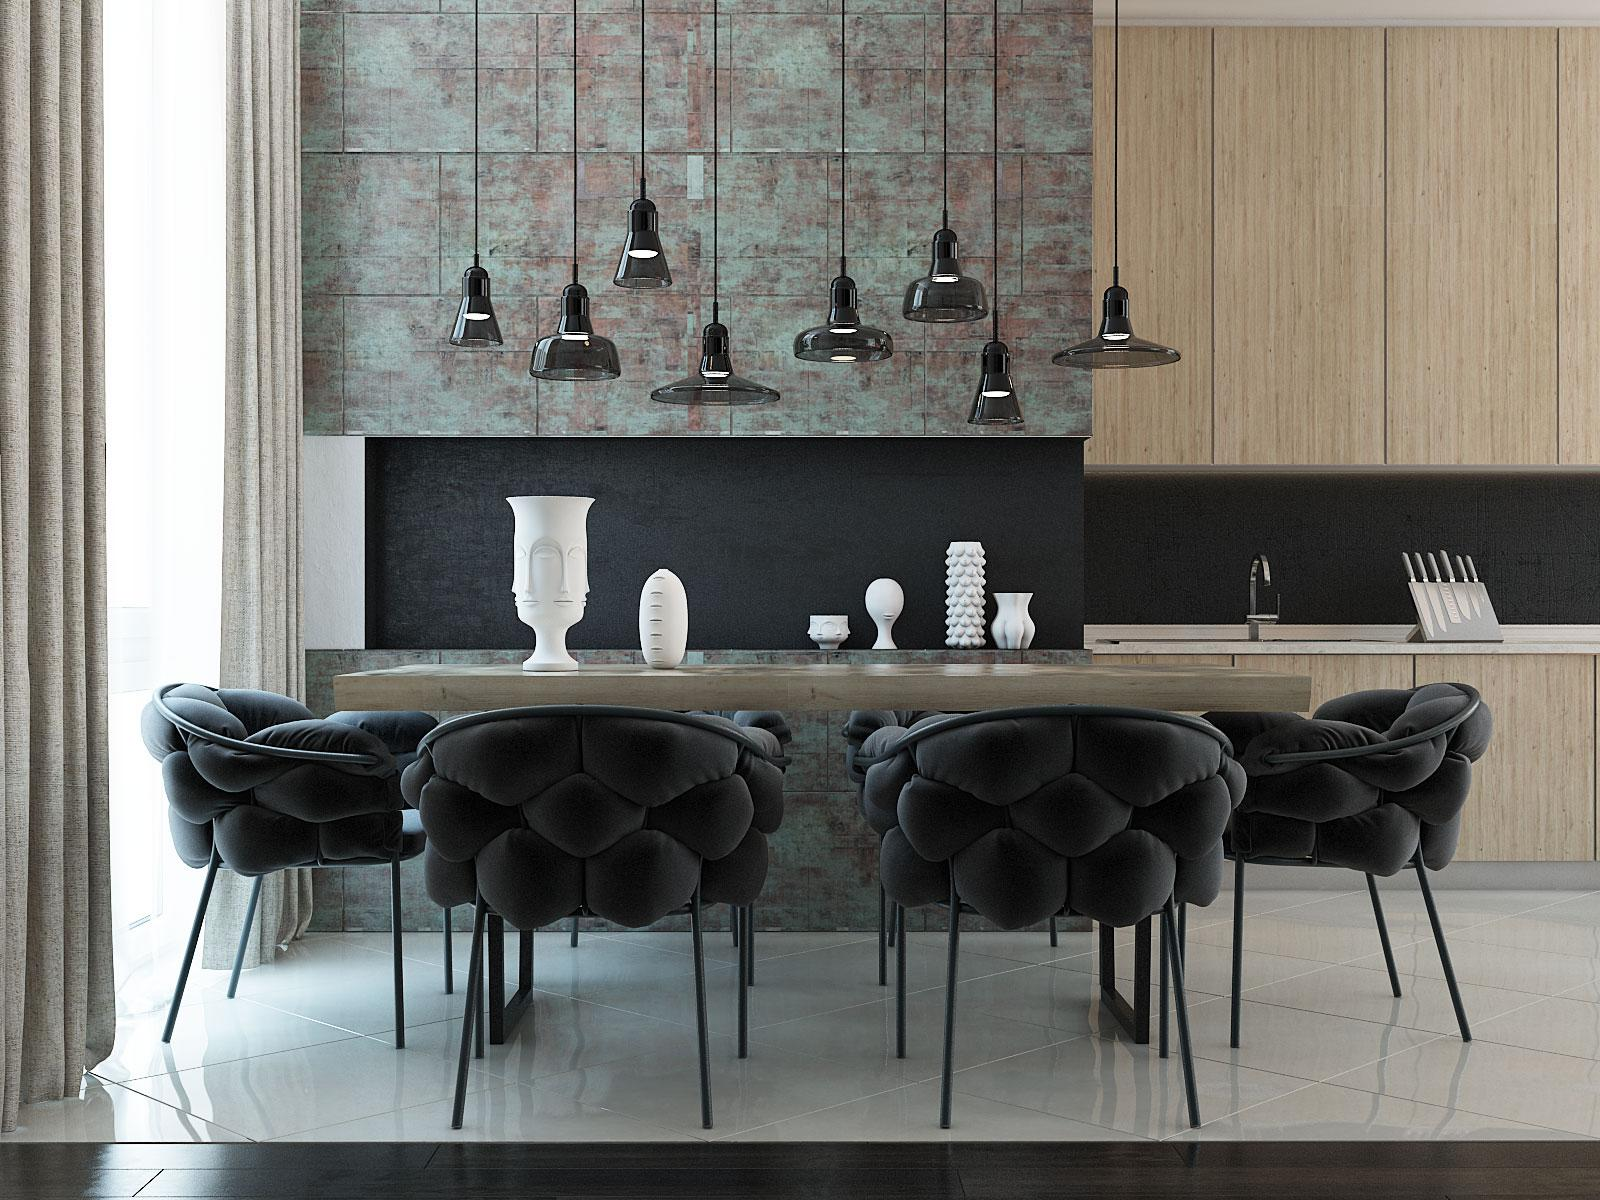 Artistic Dining Room - 4 modern homes with amazing fireplaces and creative lighting